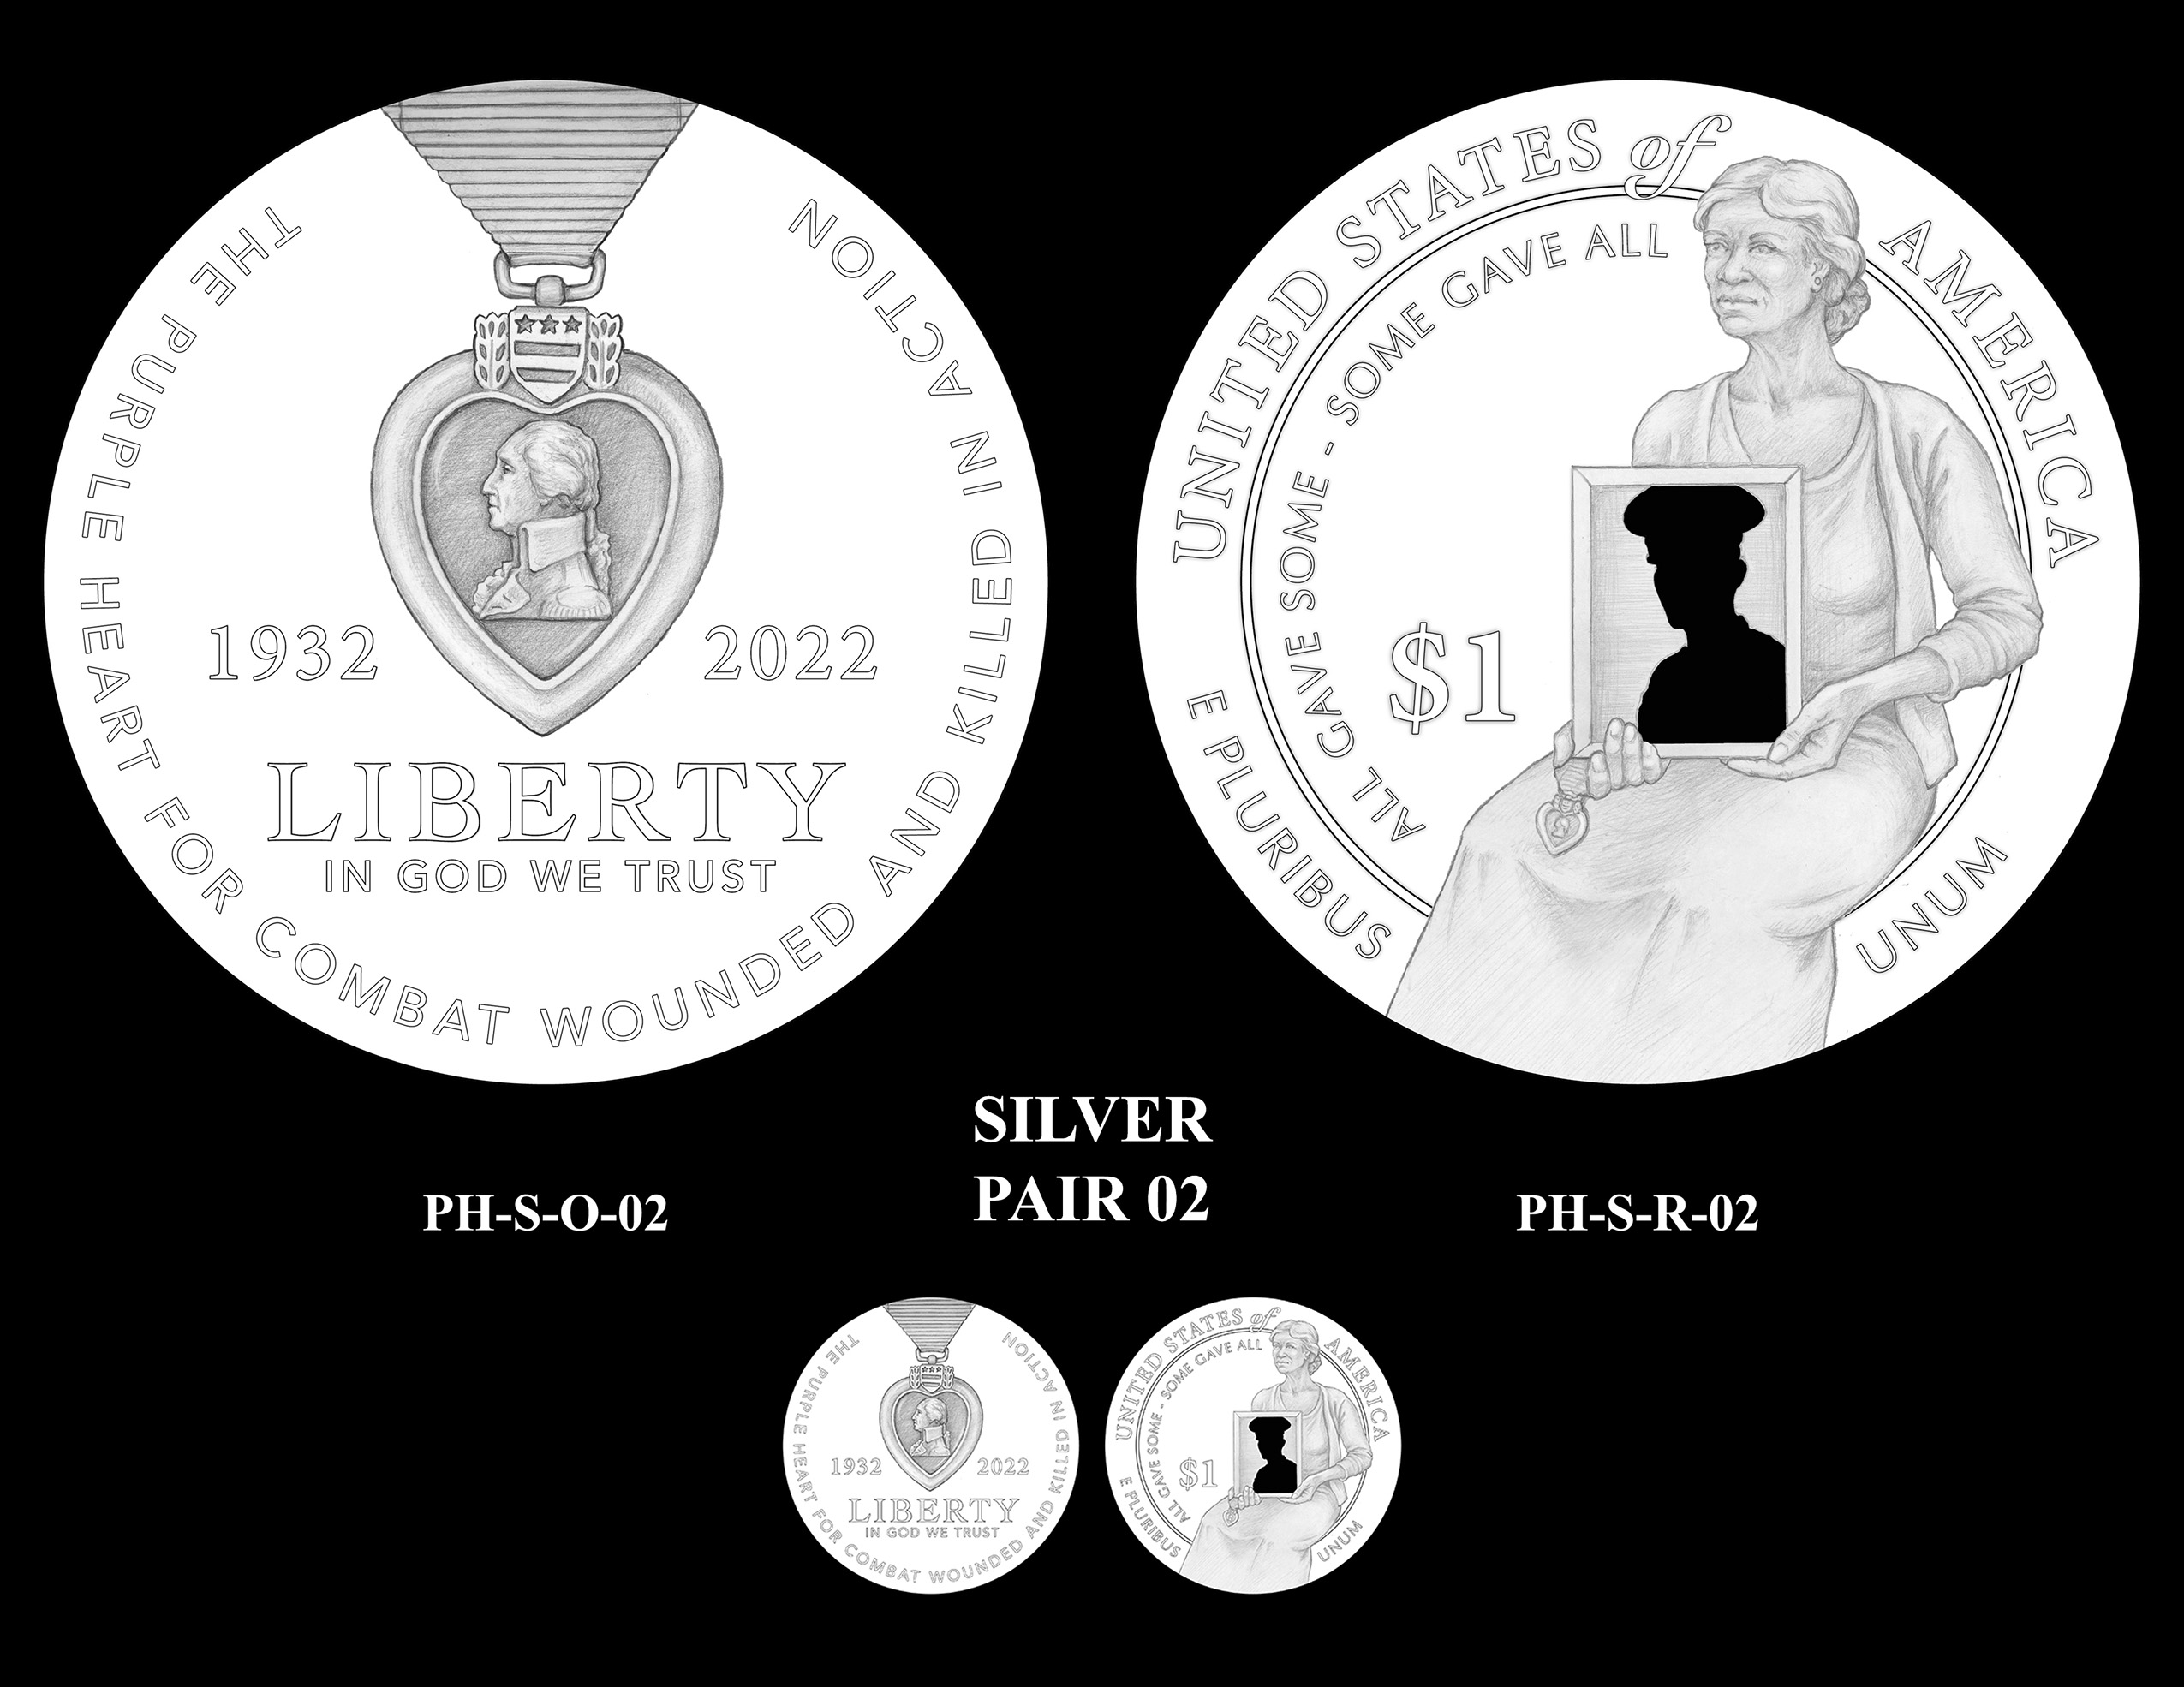 Silver Pair 02 -- National Purple Heart Hall of Honor Commemorative Coin Program